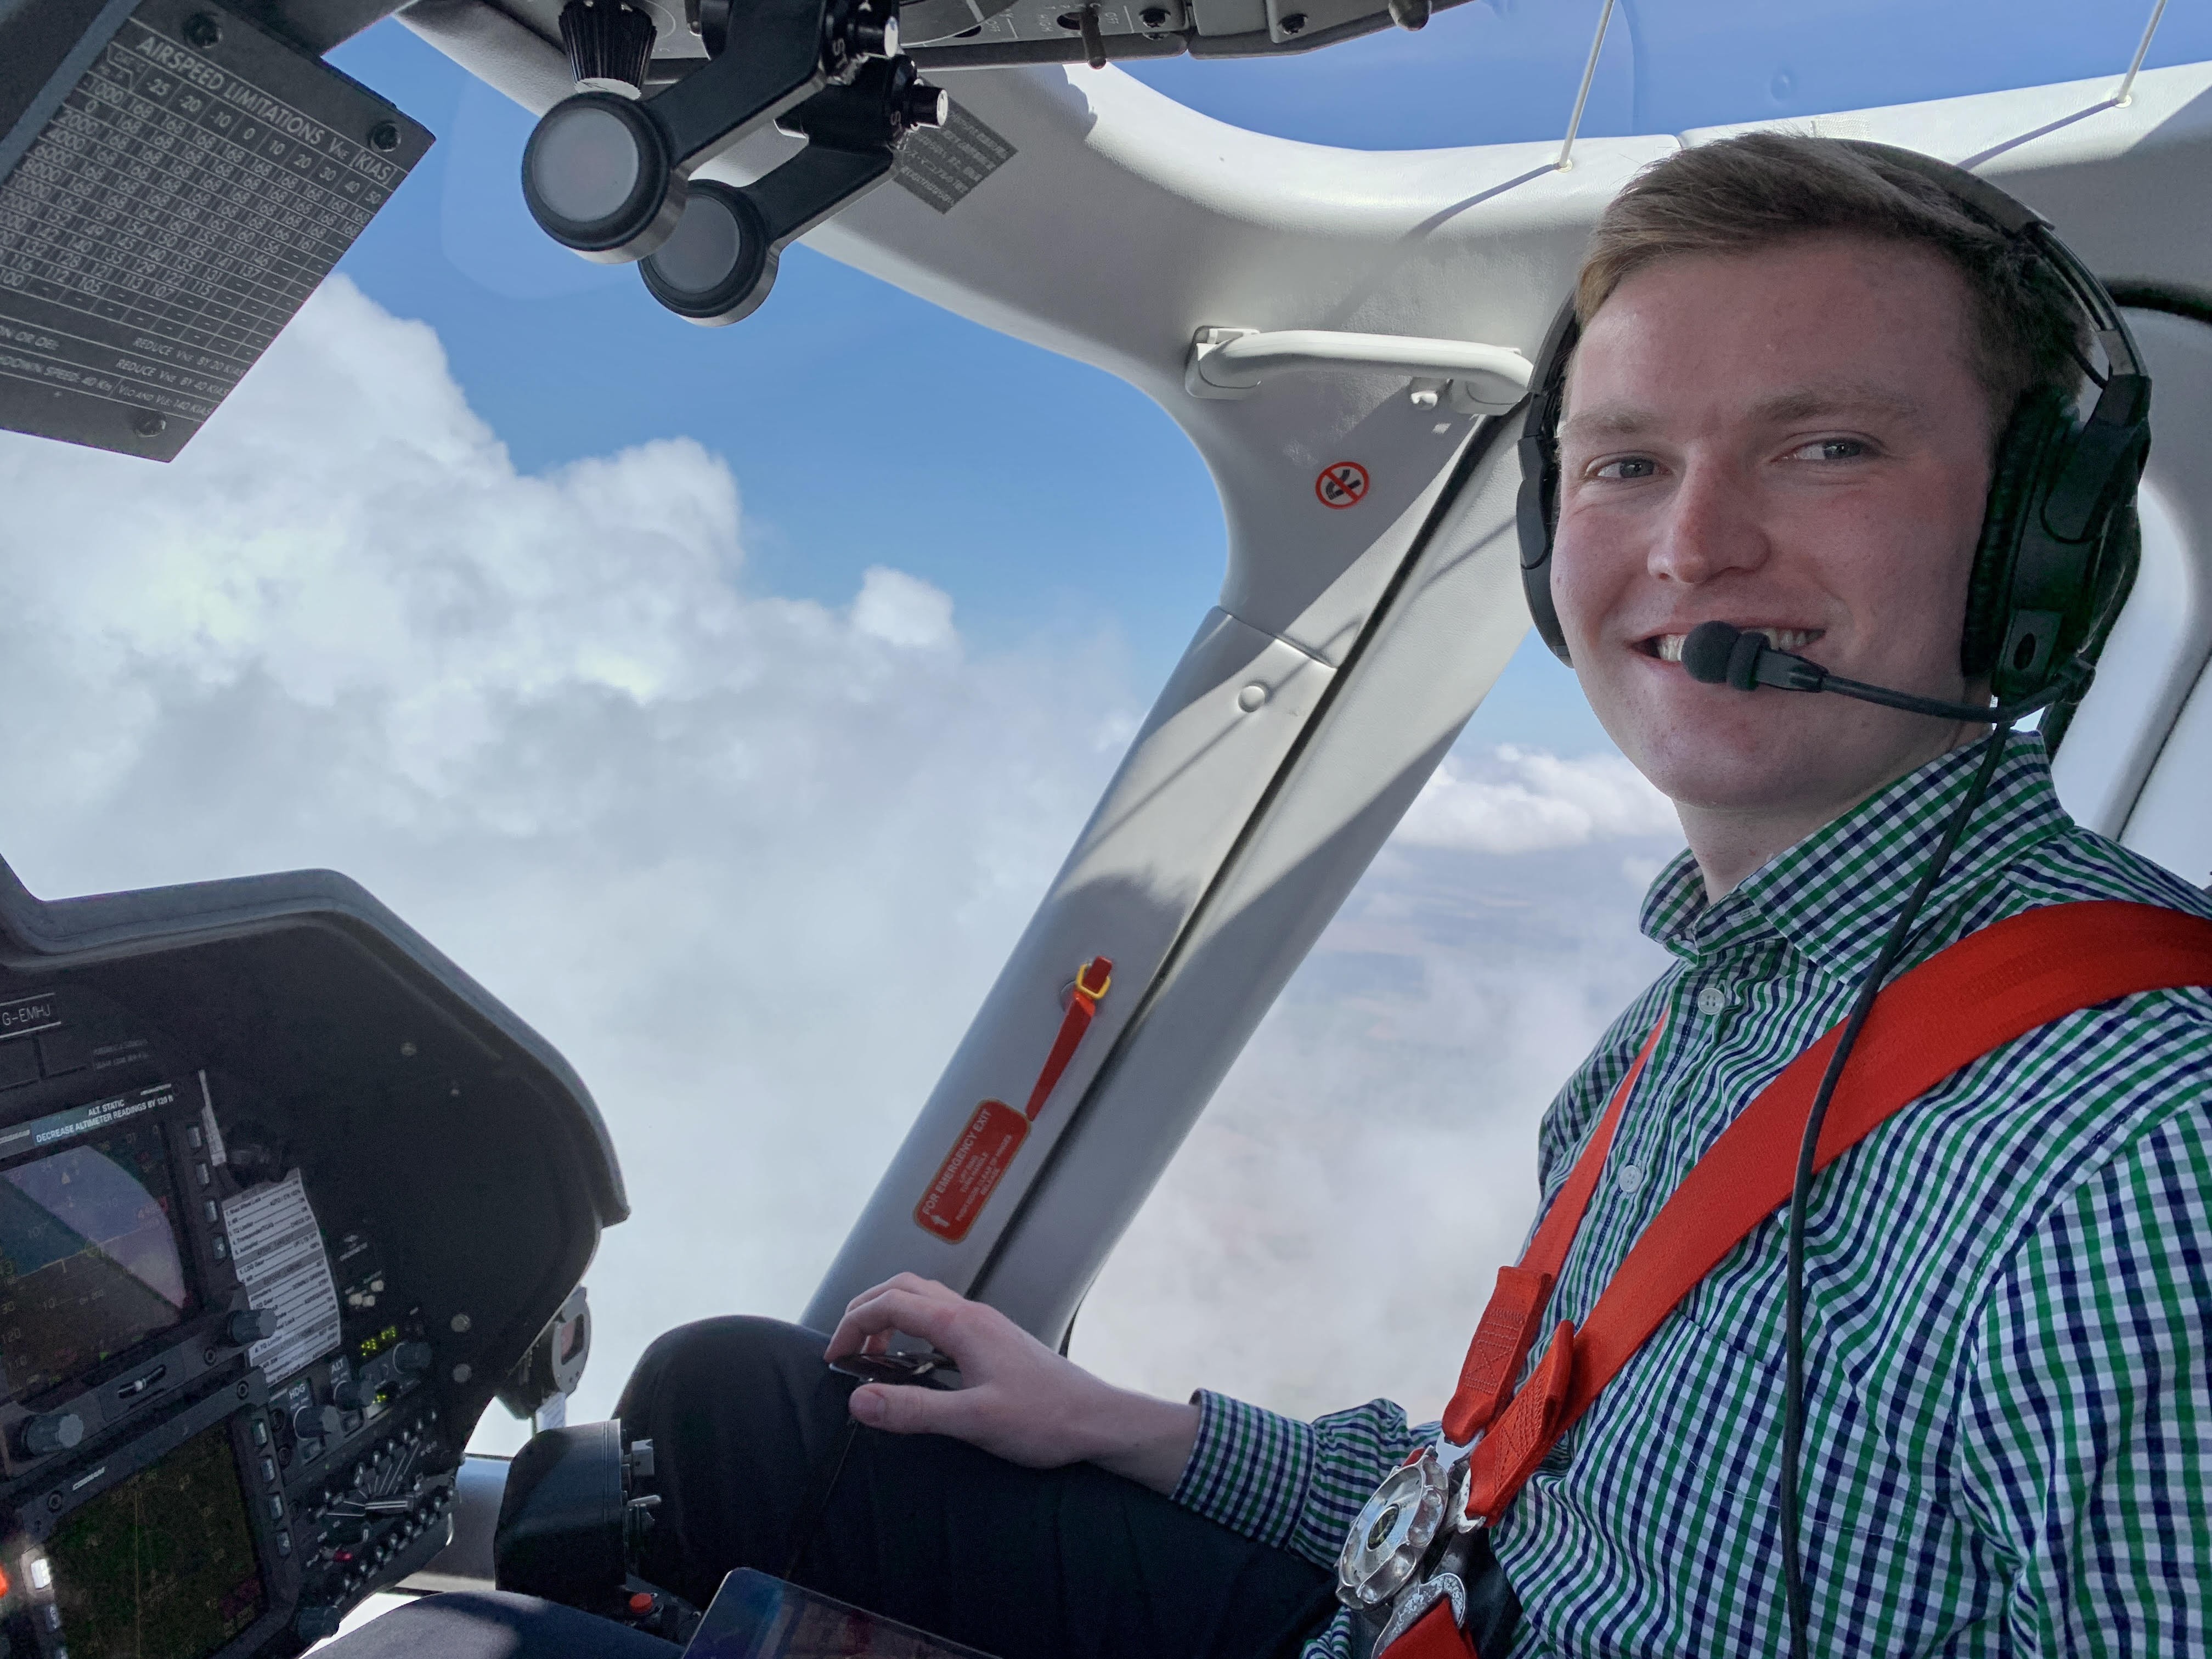 journey to becoming a helicopter pilot